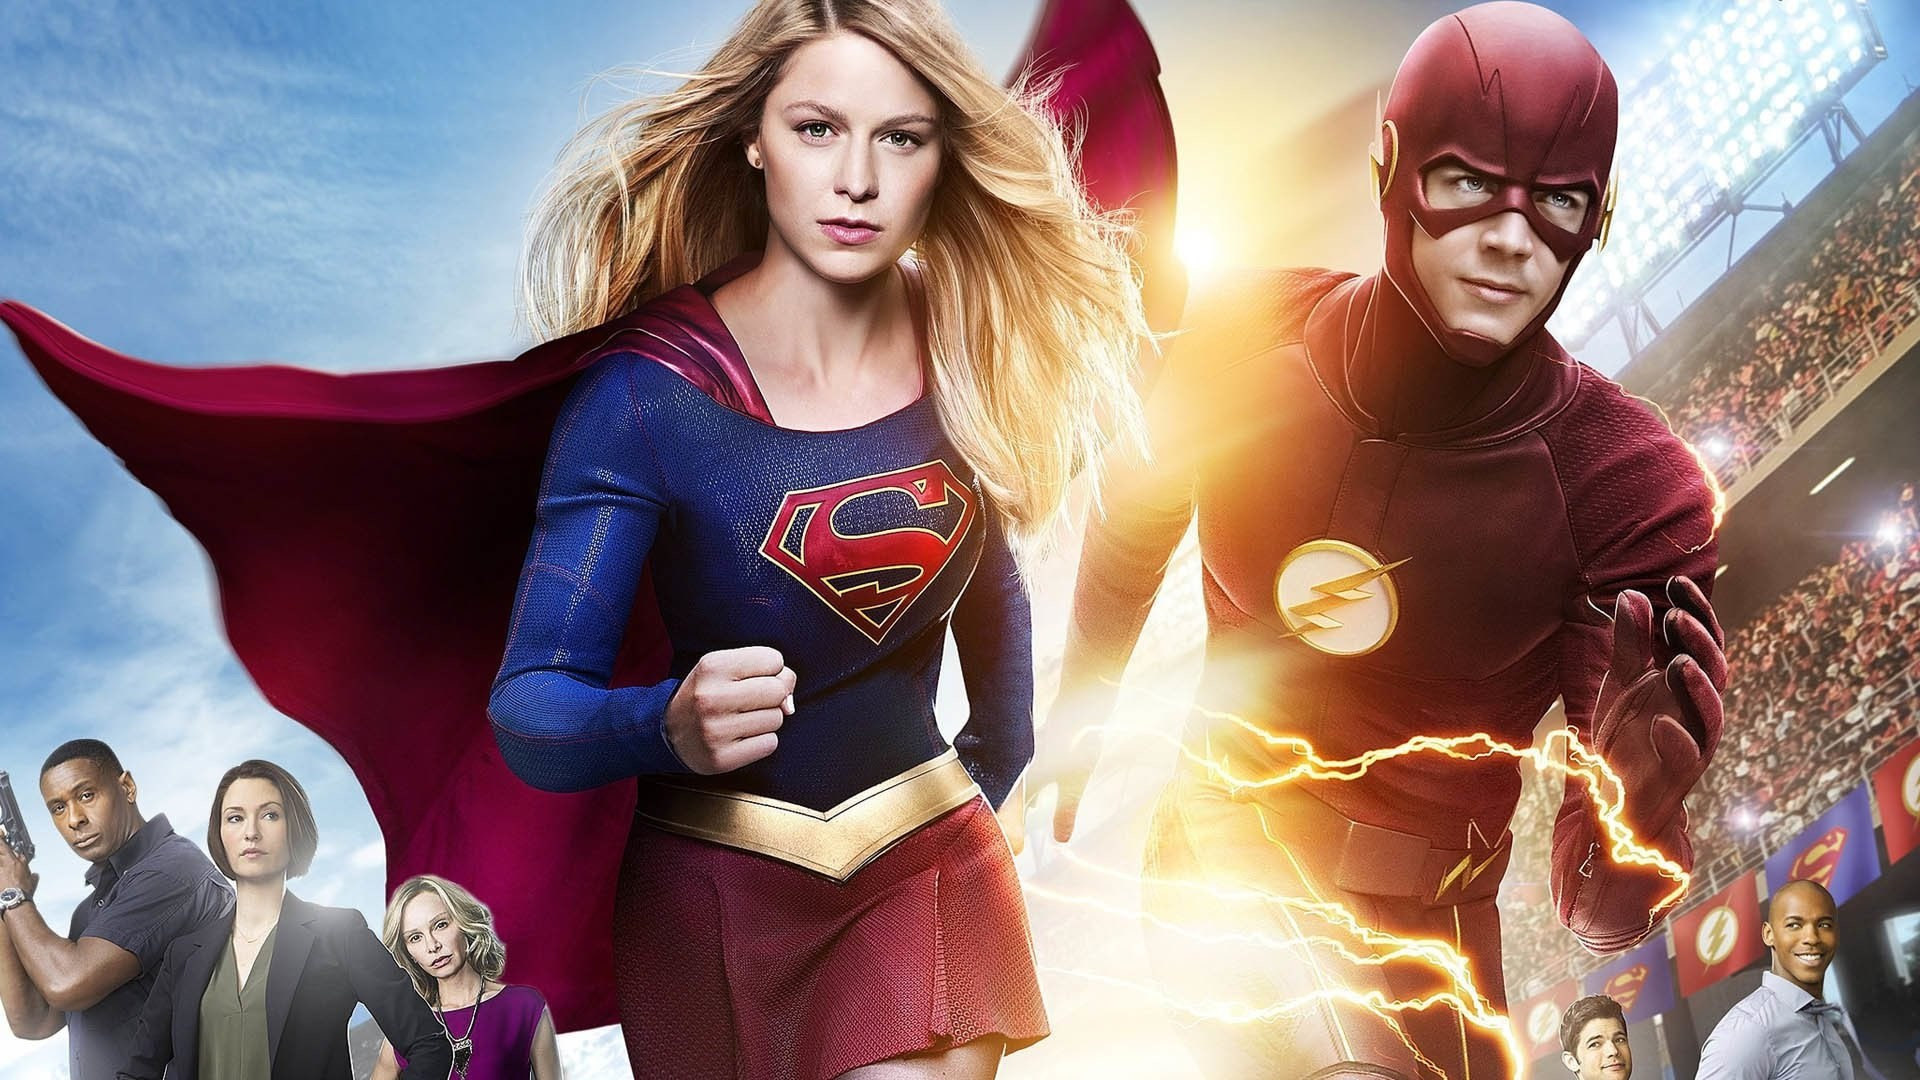 Supergirl Wallpaper HD 1920×1232 Supergirl Pictures Wallpapers (45  Wallpapers) | Adorable Wallpapers